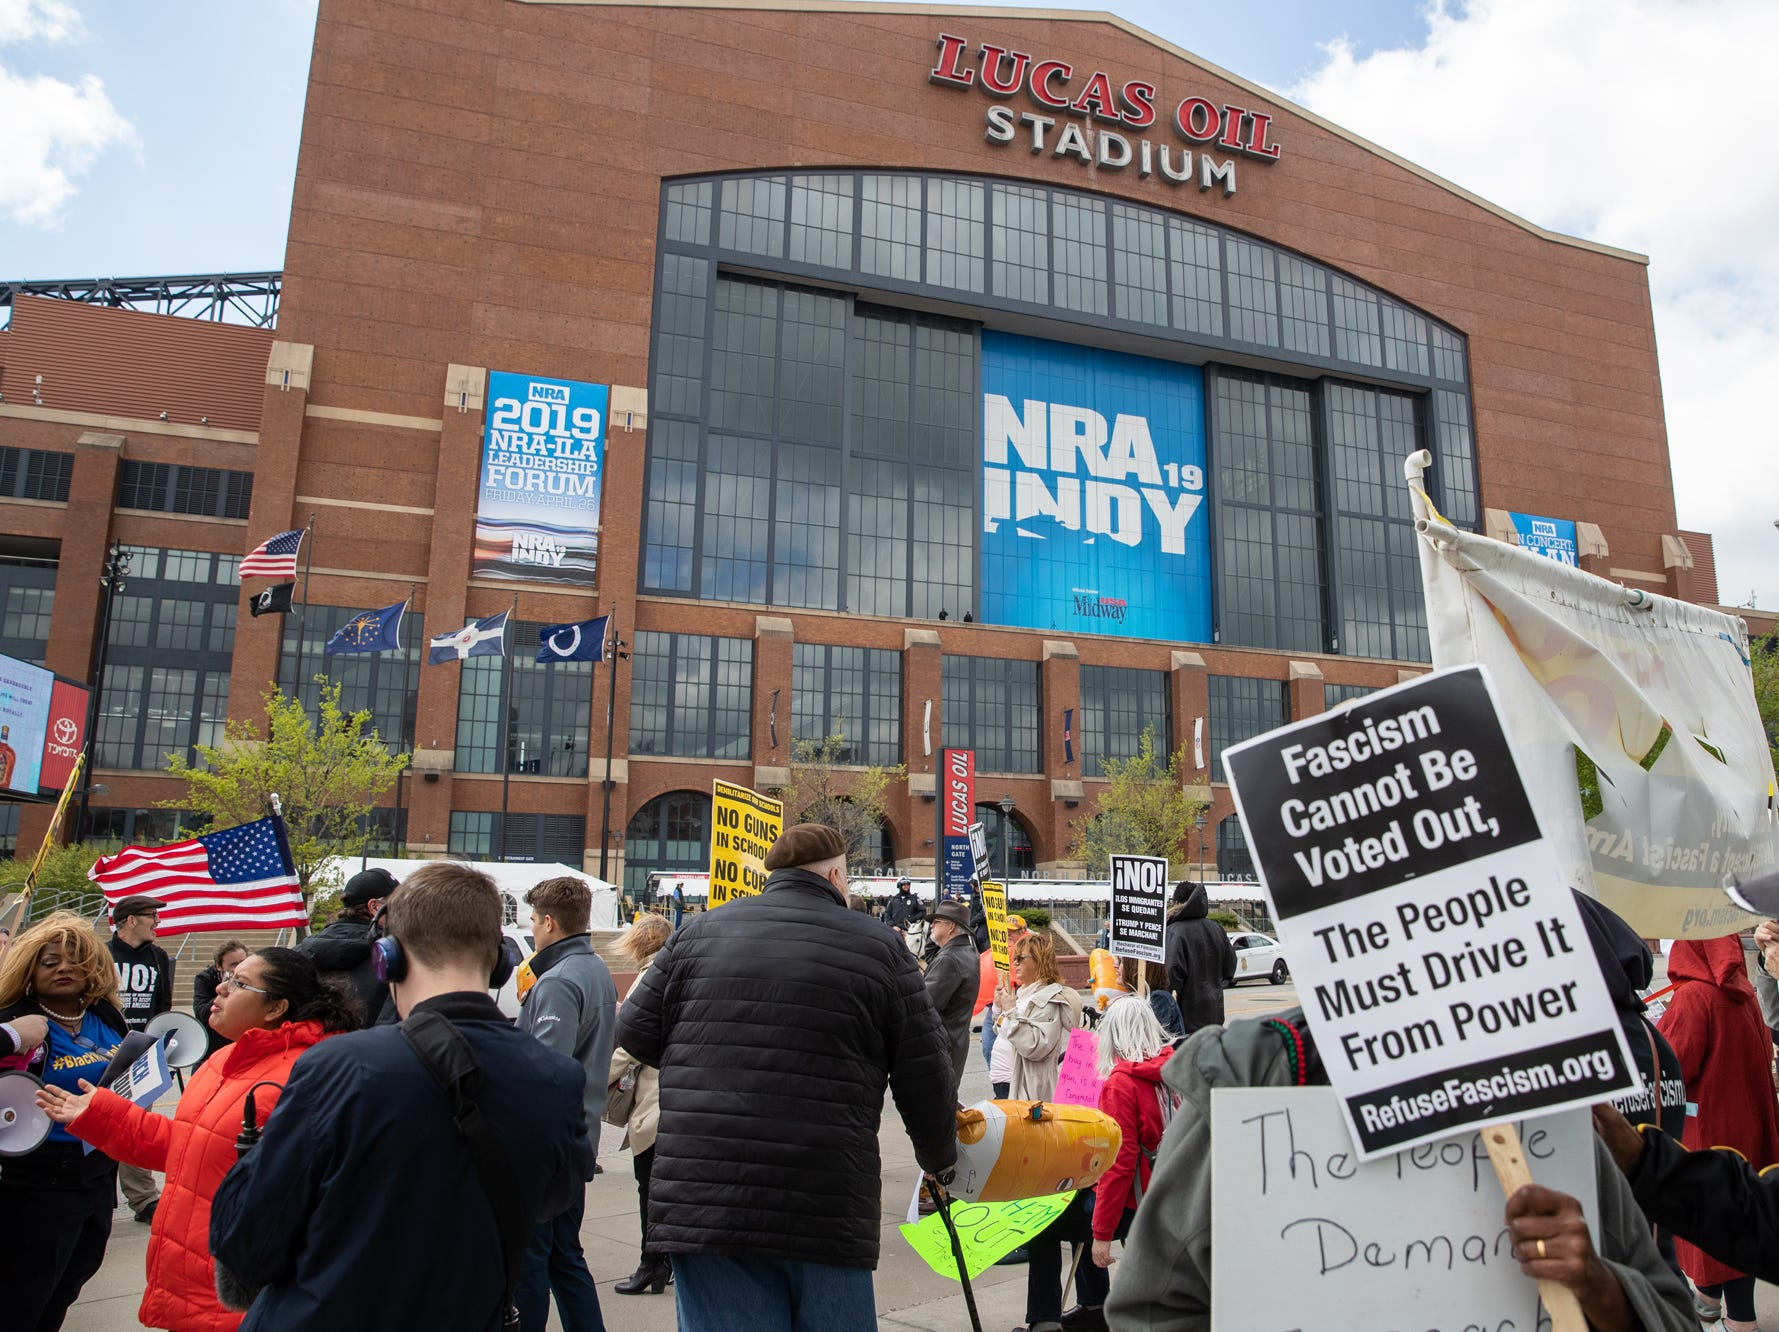 Protesters chant outside Lucas Oil Stadium during President Donald Trump's speech during the at the National Rifle Association Institute for Legislative Action on Friday, April 26, 2019.